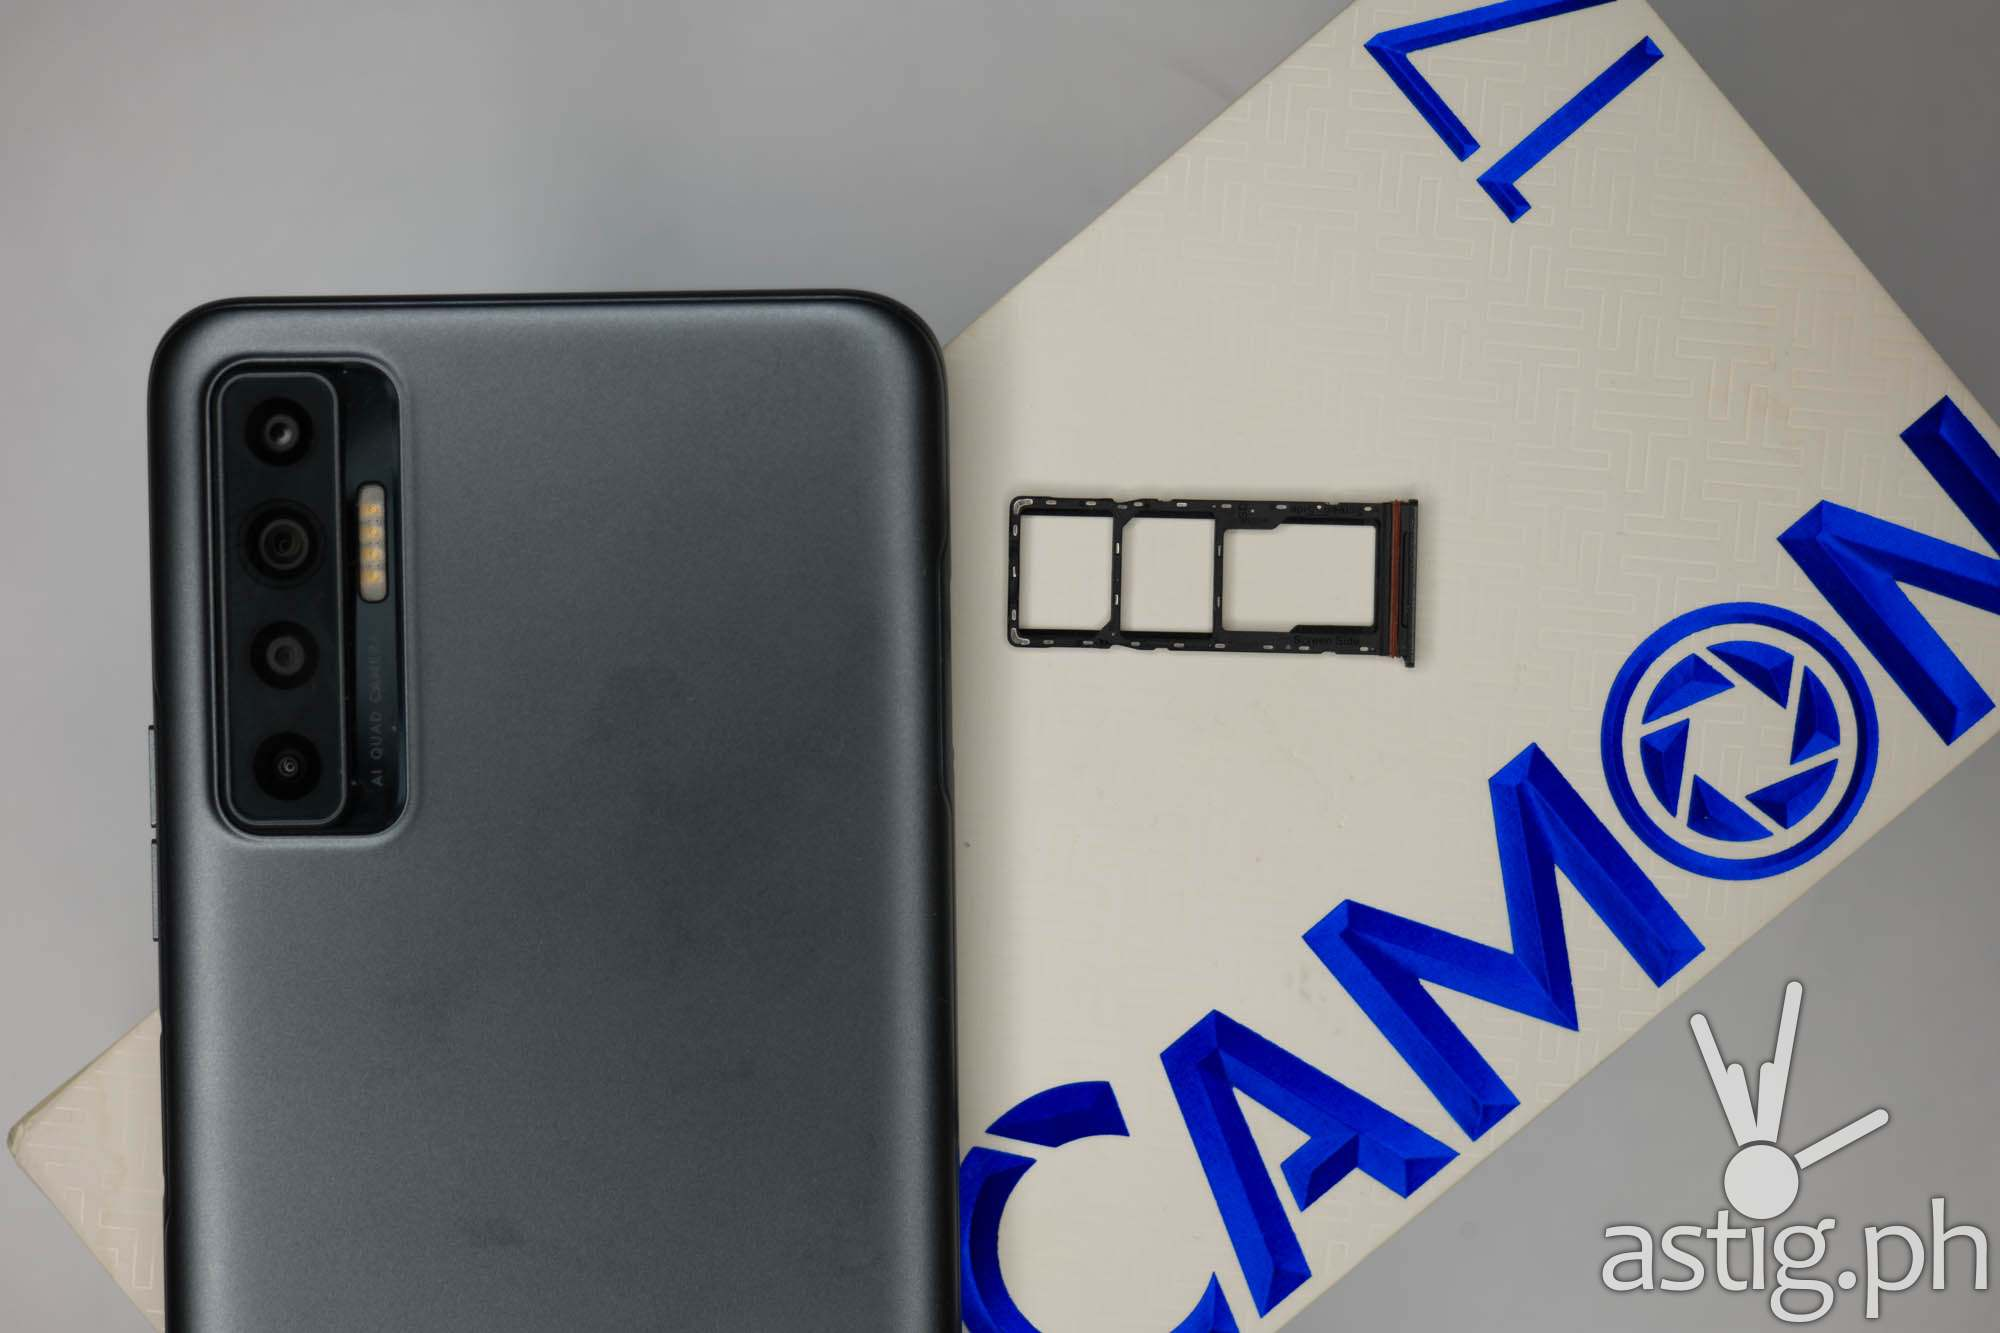 Dual SIM card and expansion slots - TECNO Camon 17P (Philippines)